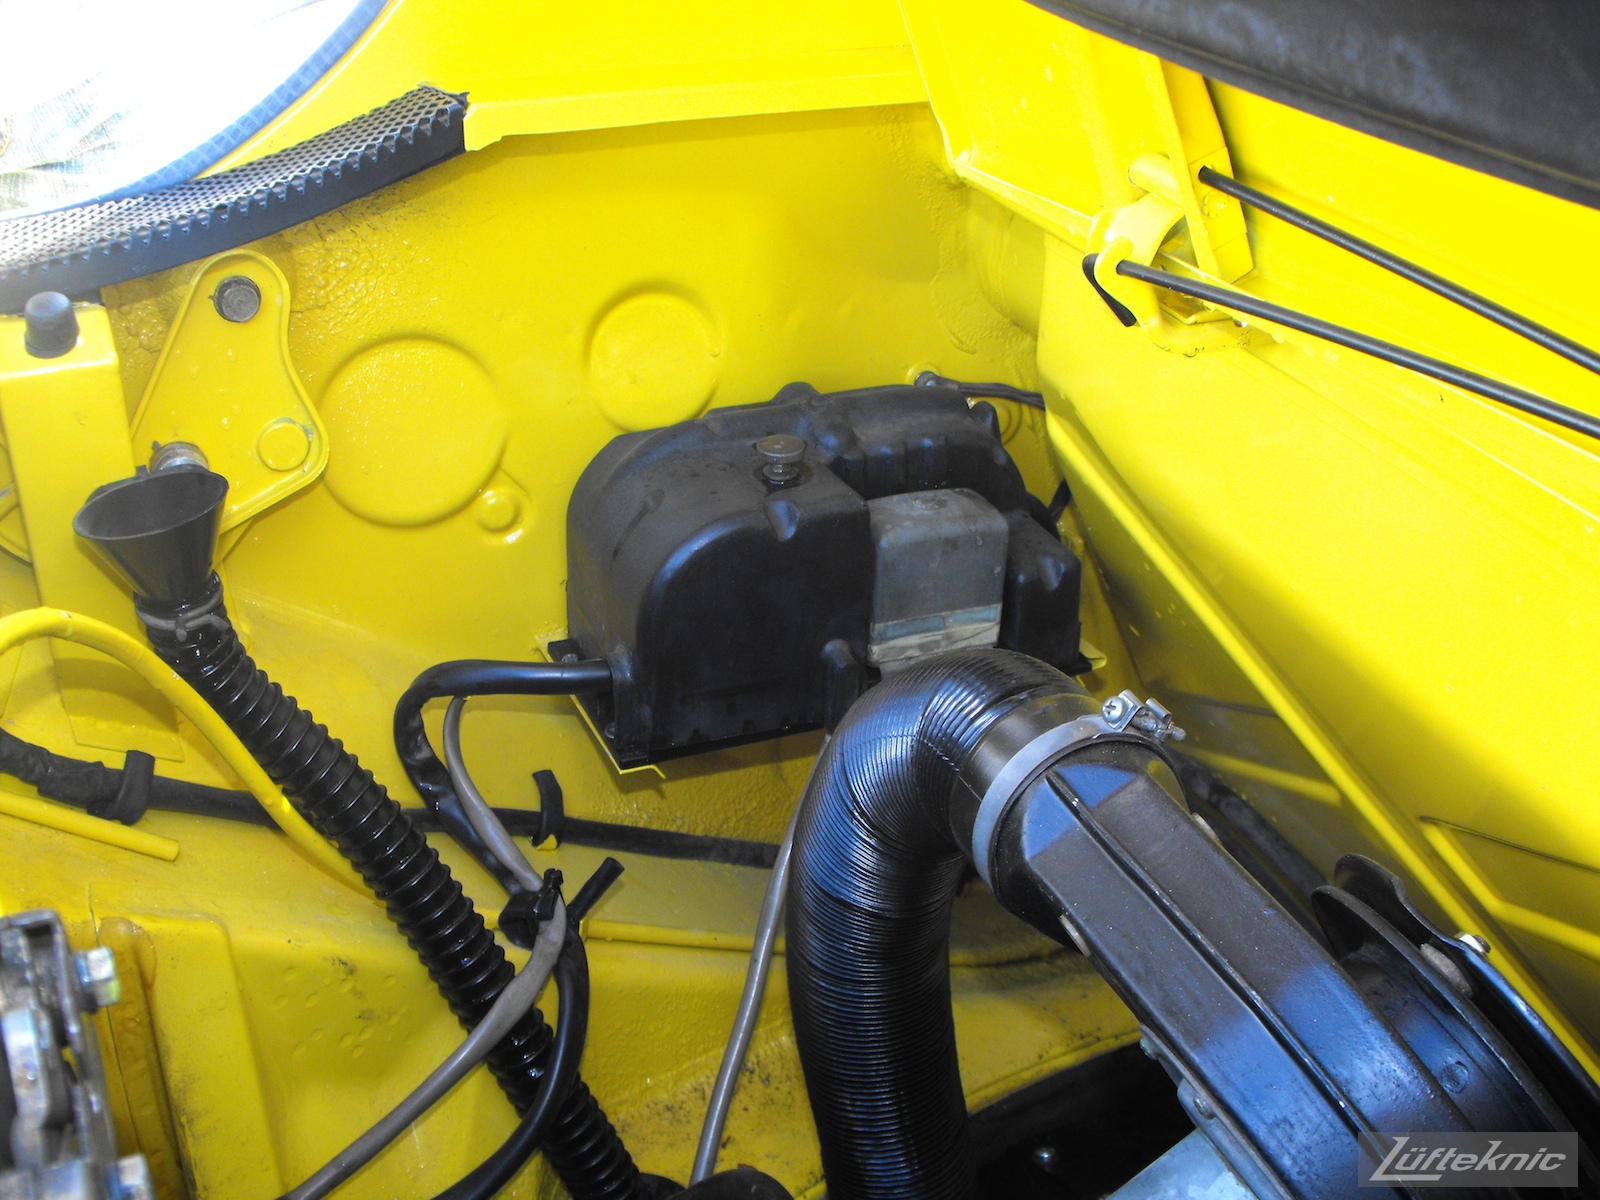 Engine details on a completely restored yellow Porsche 914 posing in the parking lot of Lufteknic.